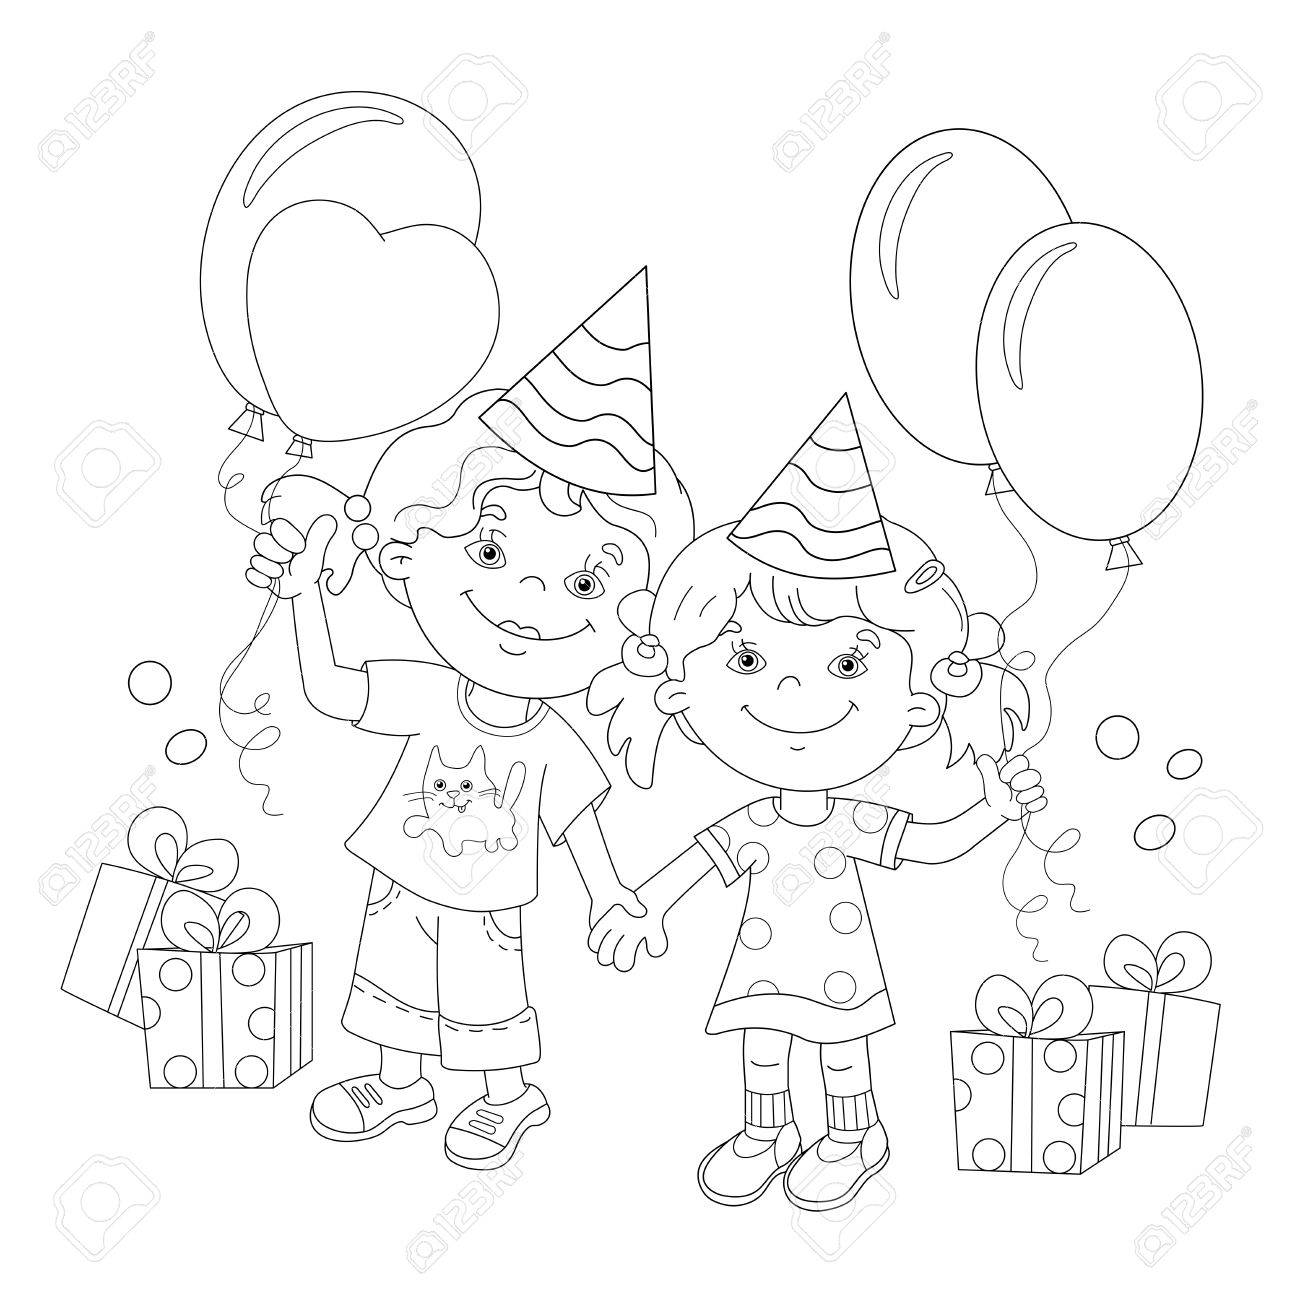 Coloring Page Outline Of Cartoon Girls With A Gift At The Holiday Book For